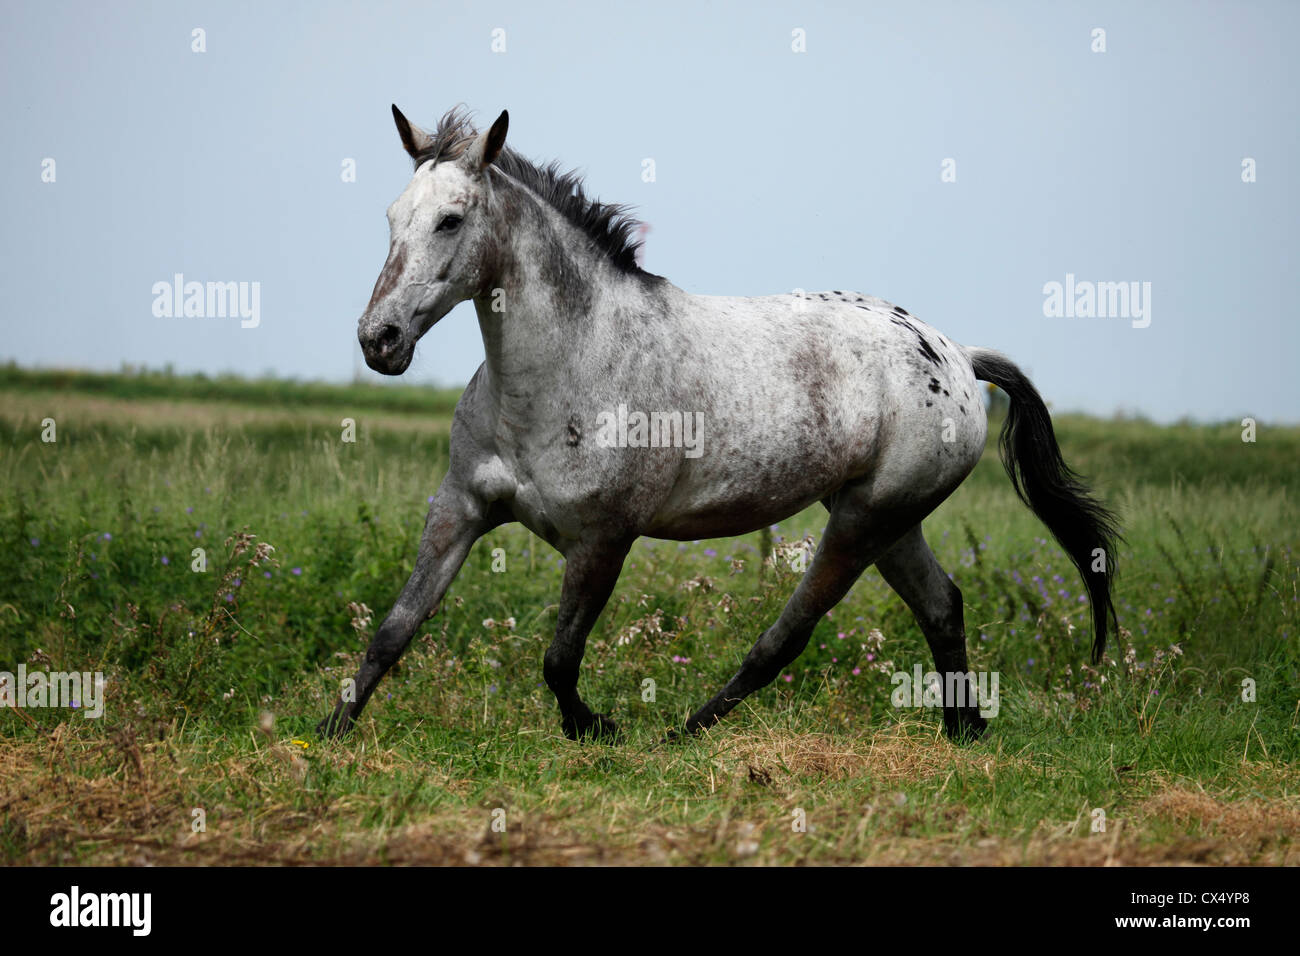 A Grey Appaloosa Horse High Resolution Stock Photography And Images Alamy